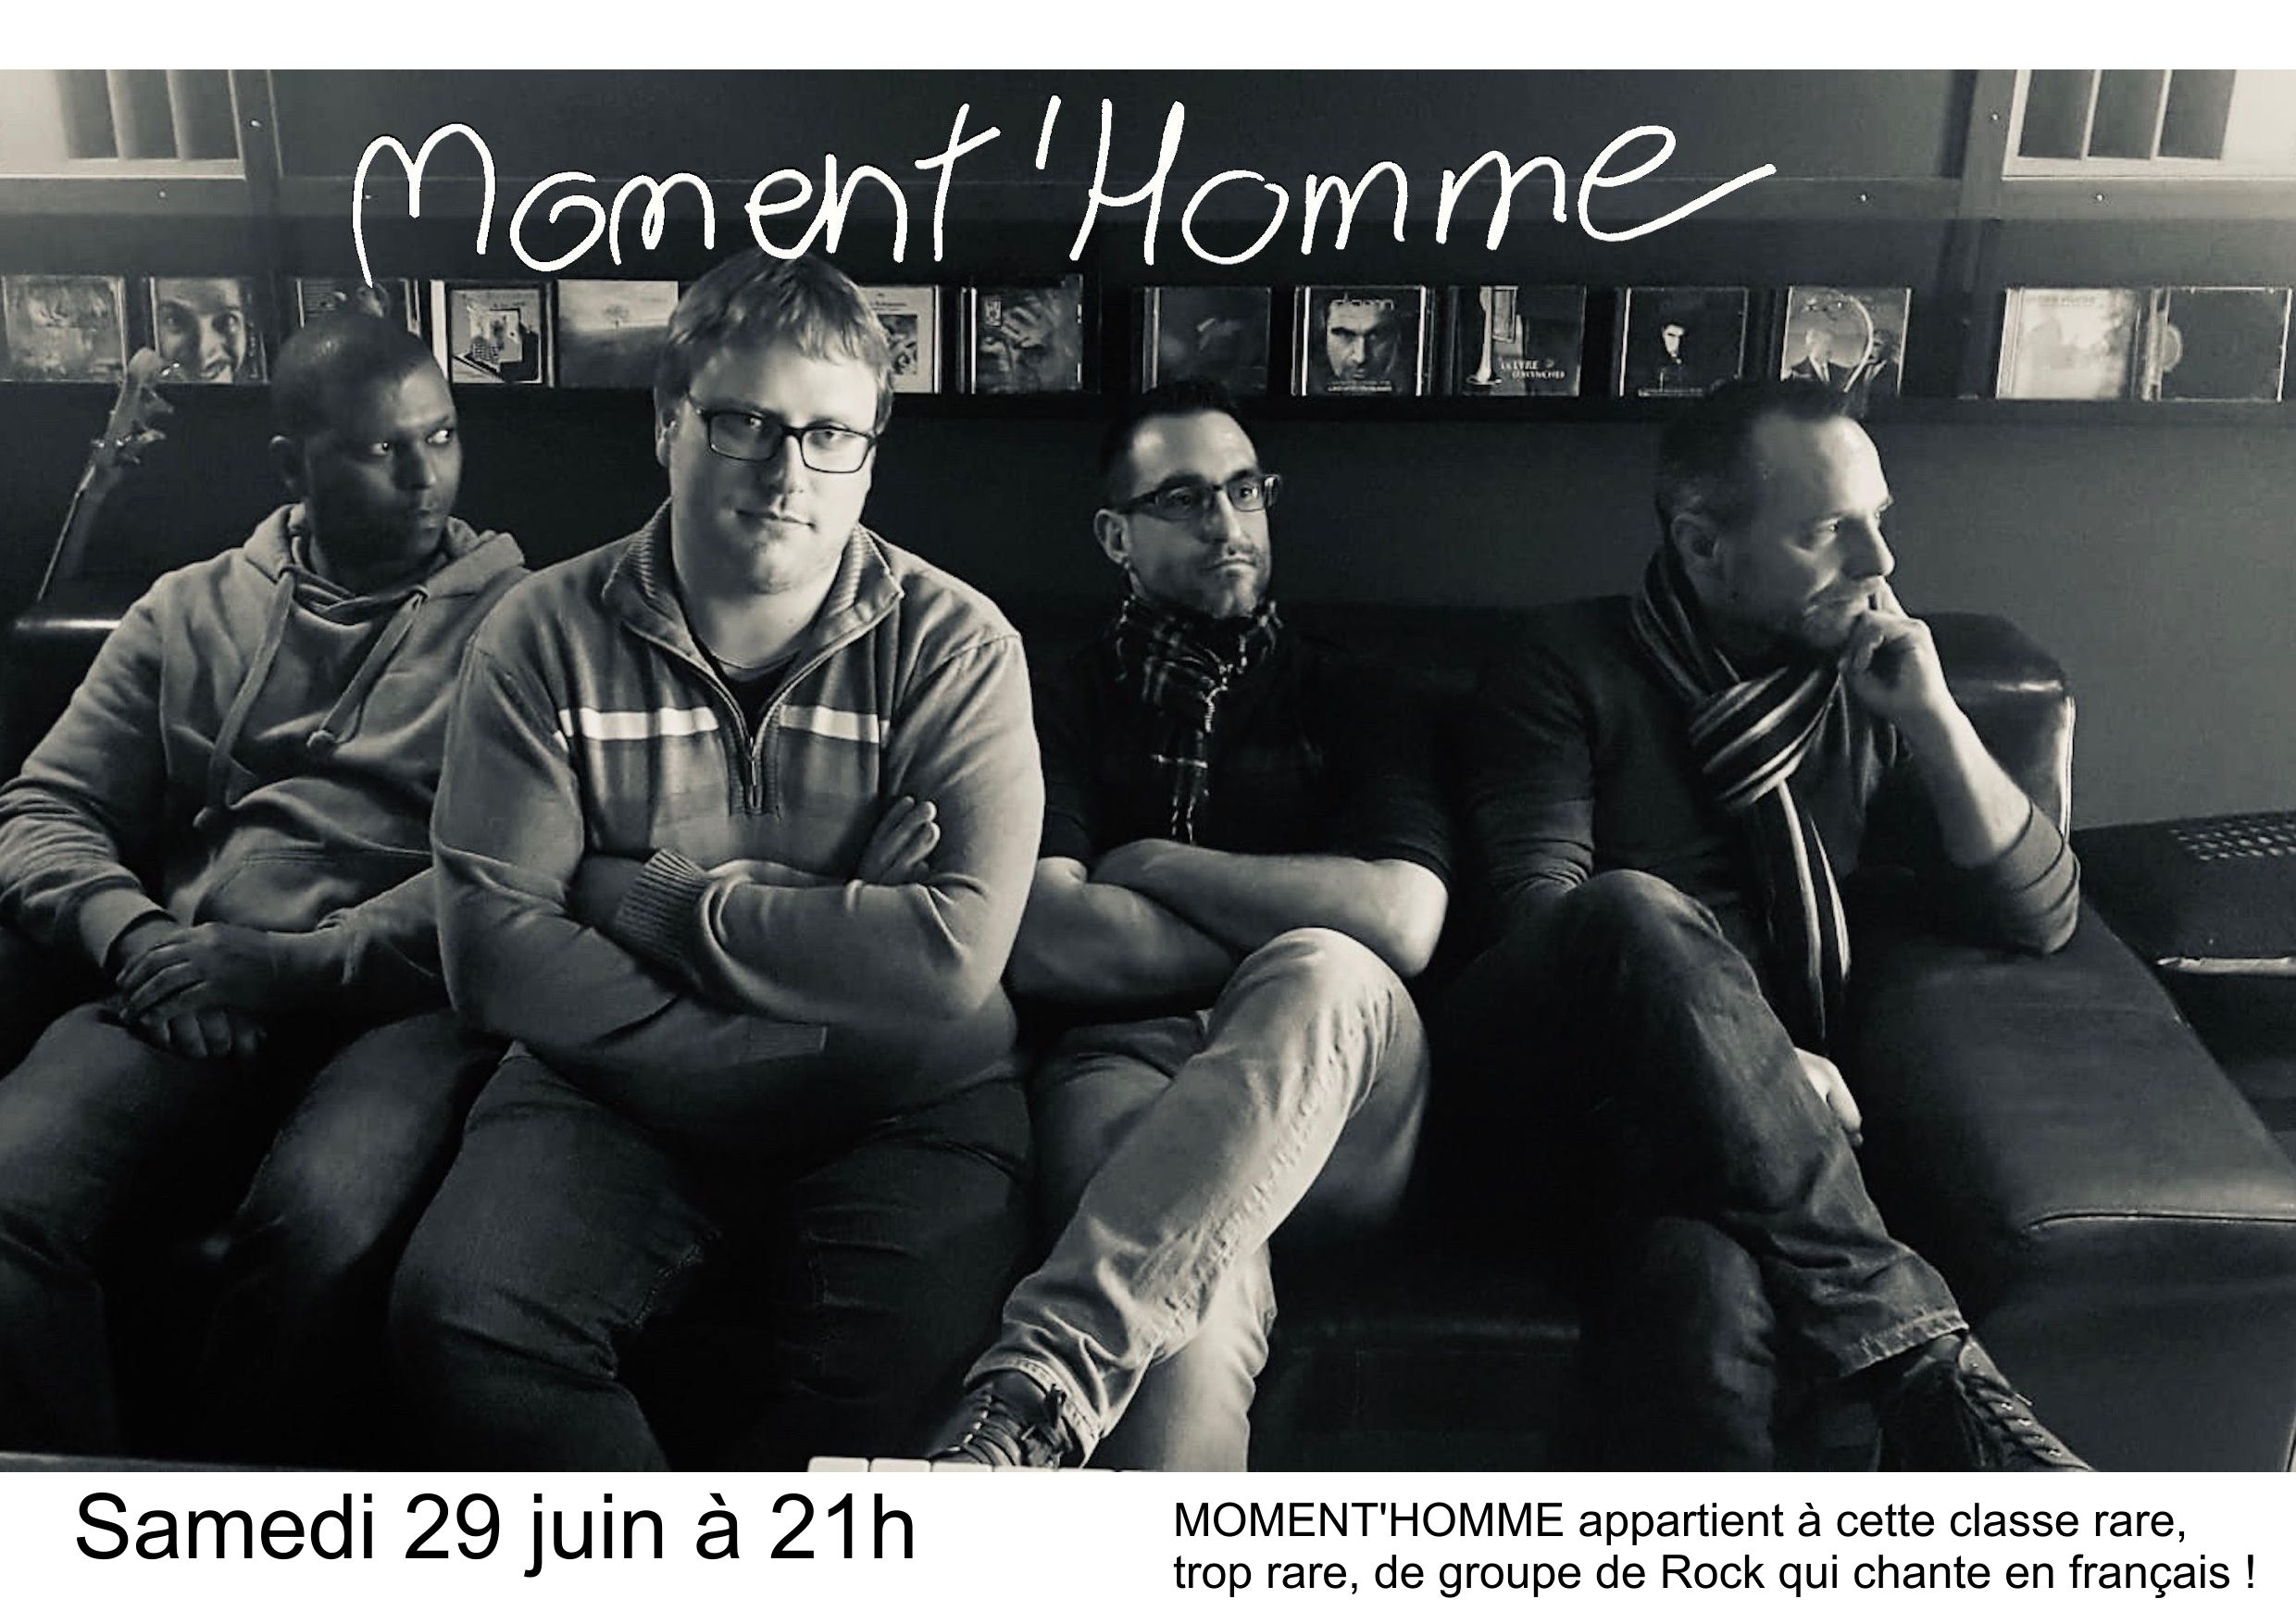 Moment'Homme